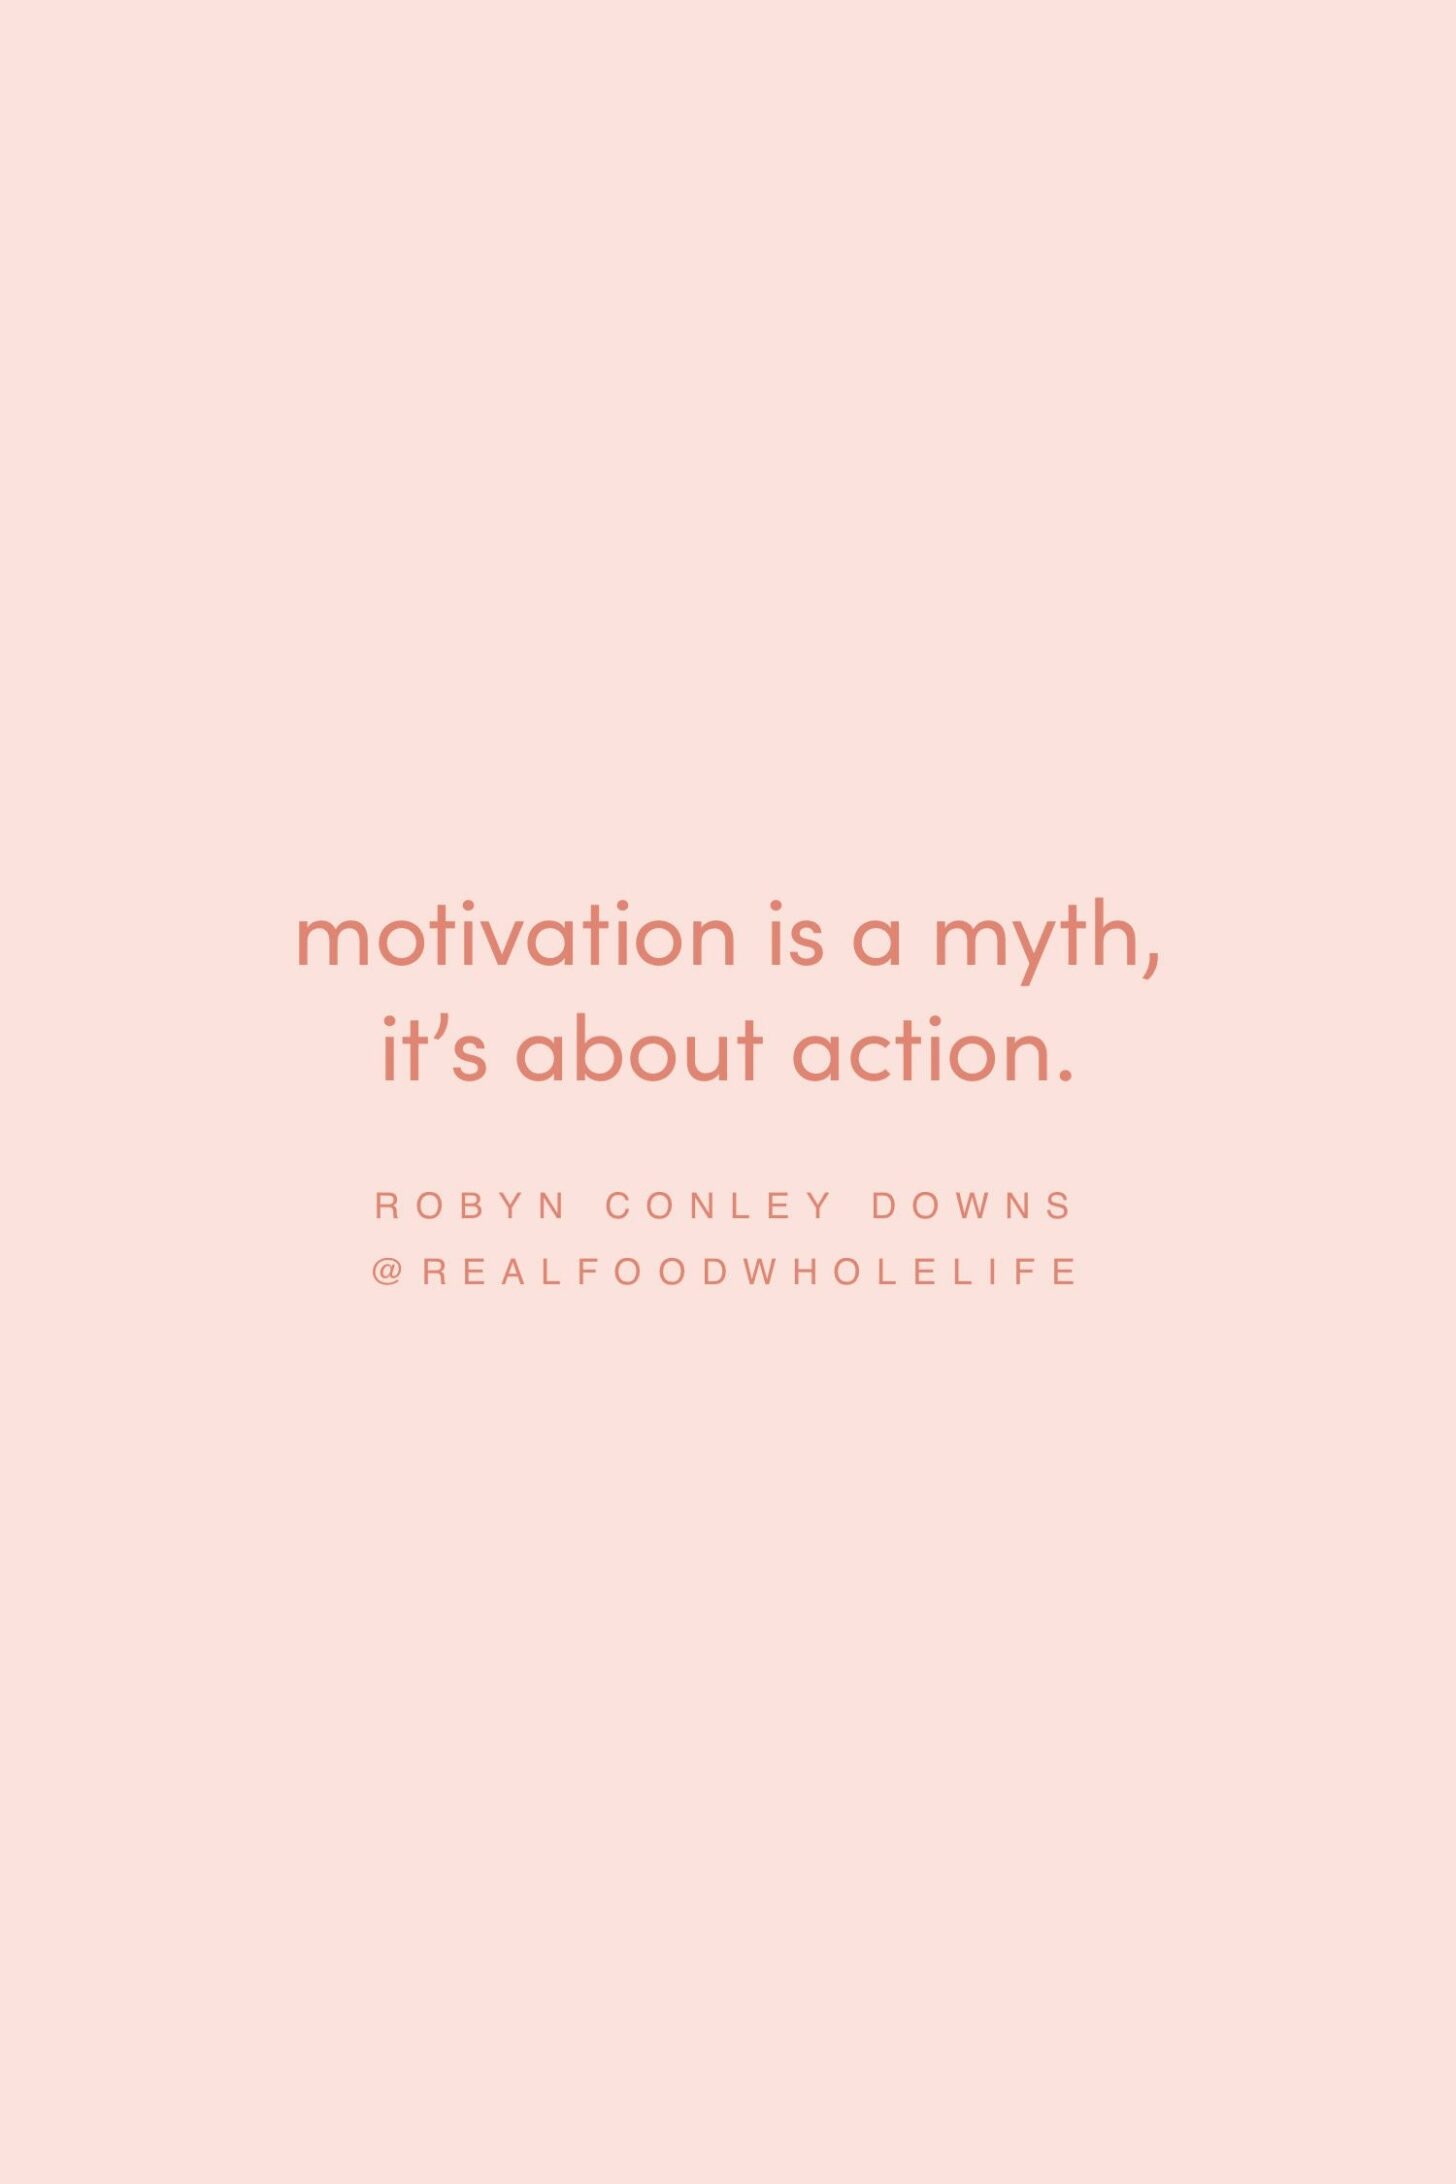 Quote on the myth of motivation by Robyn Conley Downs on the Feel Good Effect Podcast #realfoodwholelife #feelgoodeffectpodcast #motivationalquote #inspirationalquote #positivityquote #selfcarequote #actionquote #purposequote #passionquote #meaningfulquote